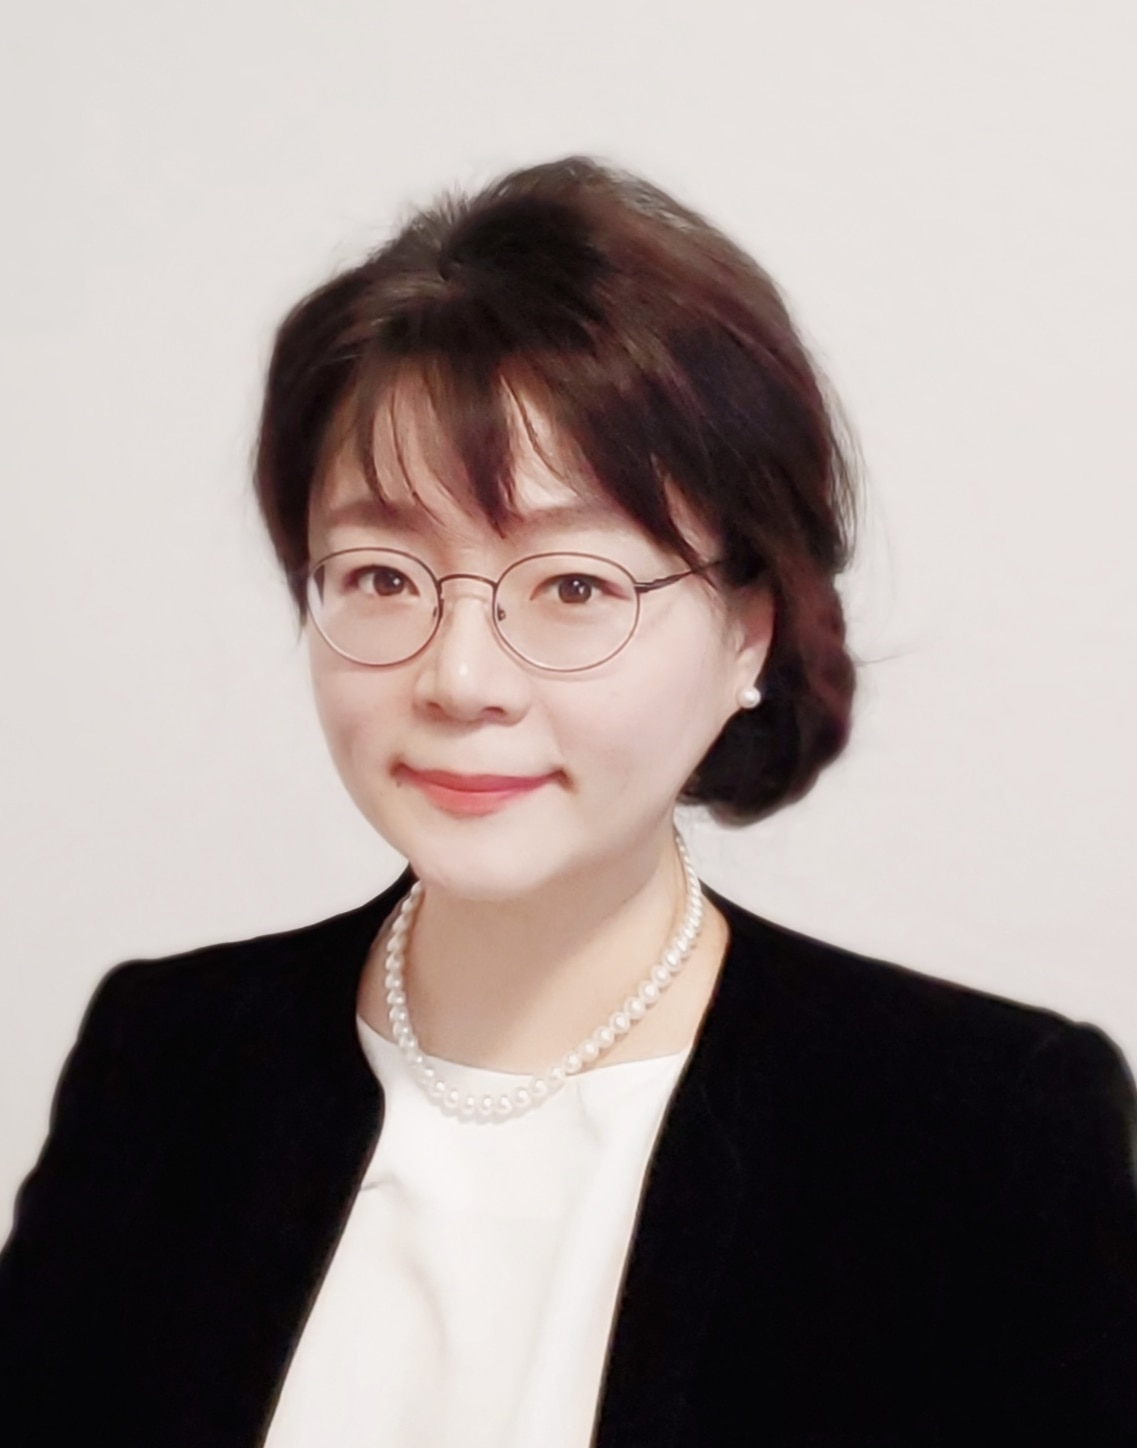 JOO YOUNG PARK  Your Financial Professional & Insurance Agent